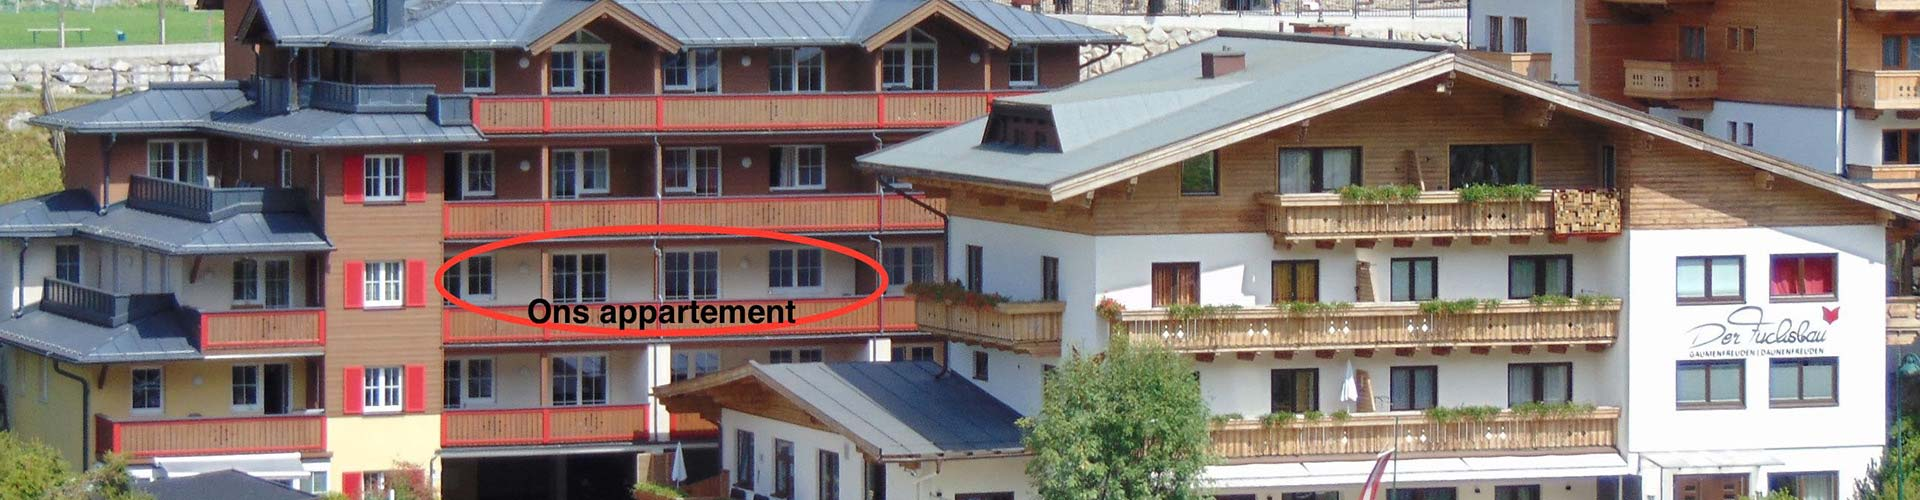 Appartement Iglsberg, Saalbach - Luxury apartment